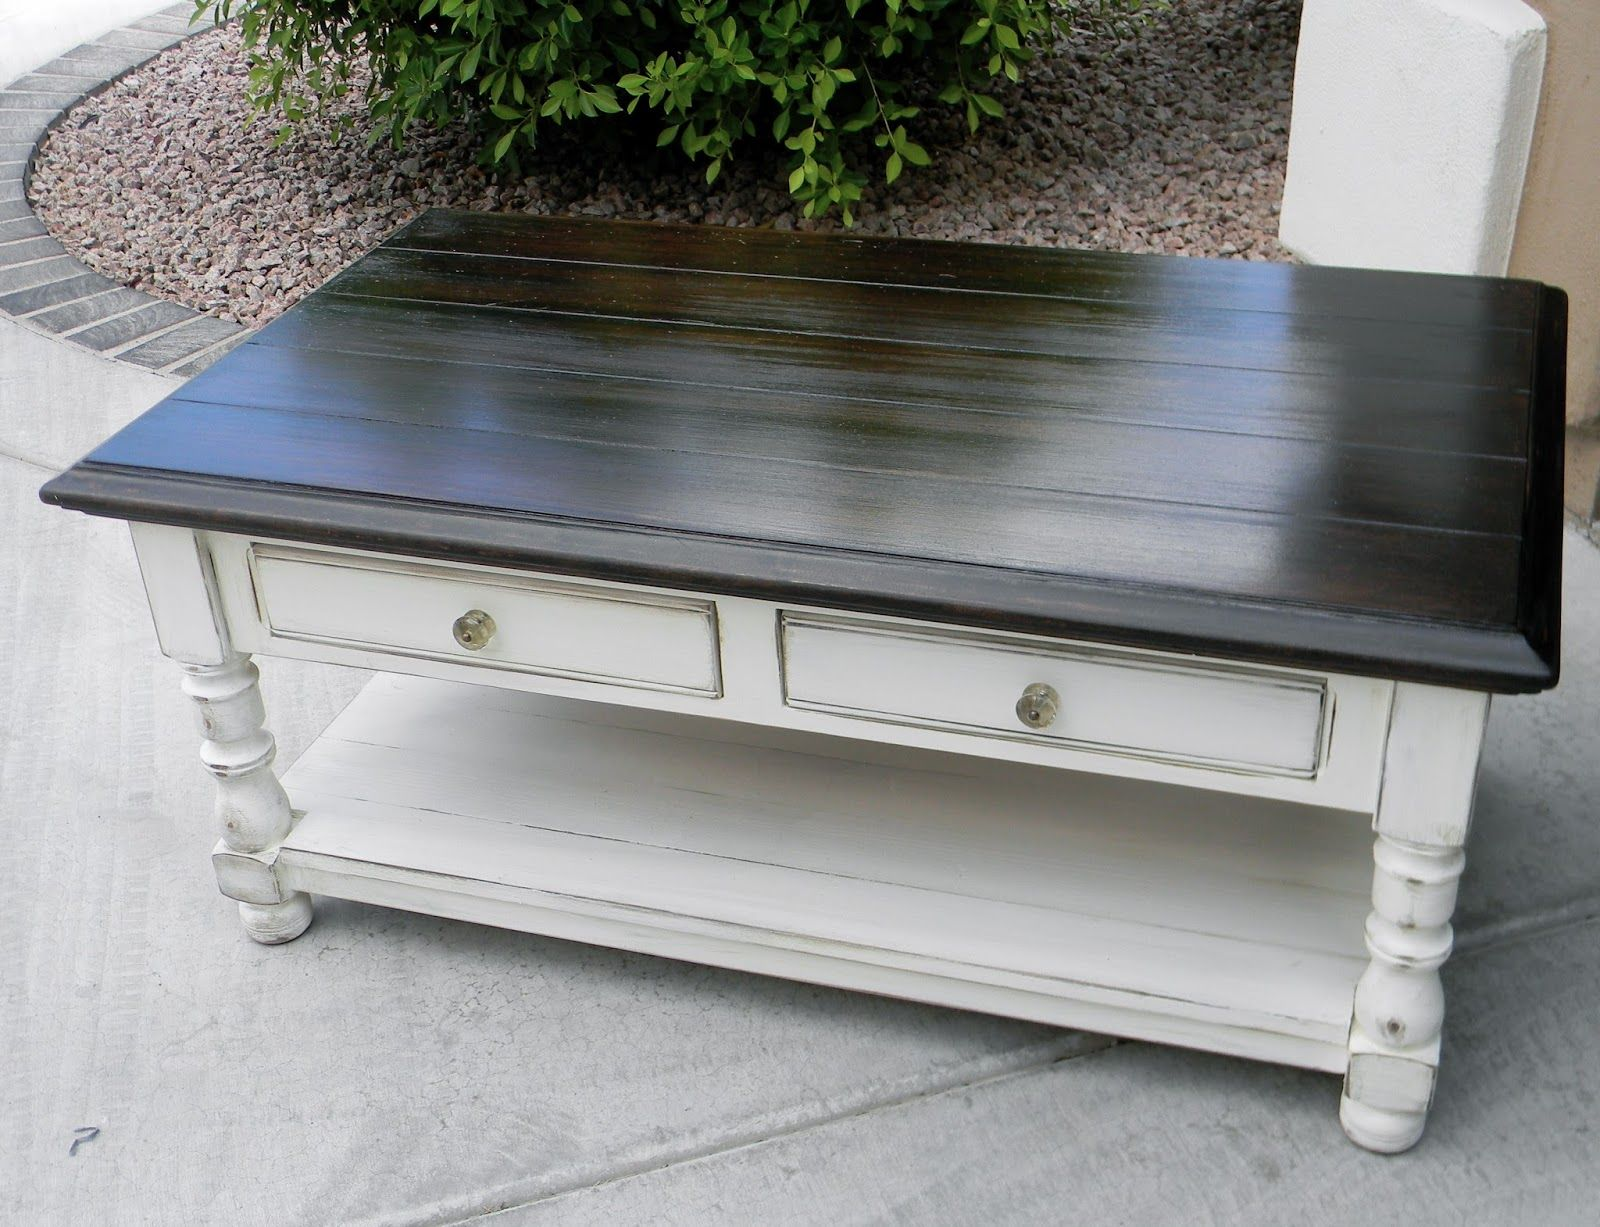 5 Ideas For A Do It Yourself Coffee Table Let 39 S Do It Refinish Coffee Tables Coffee And